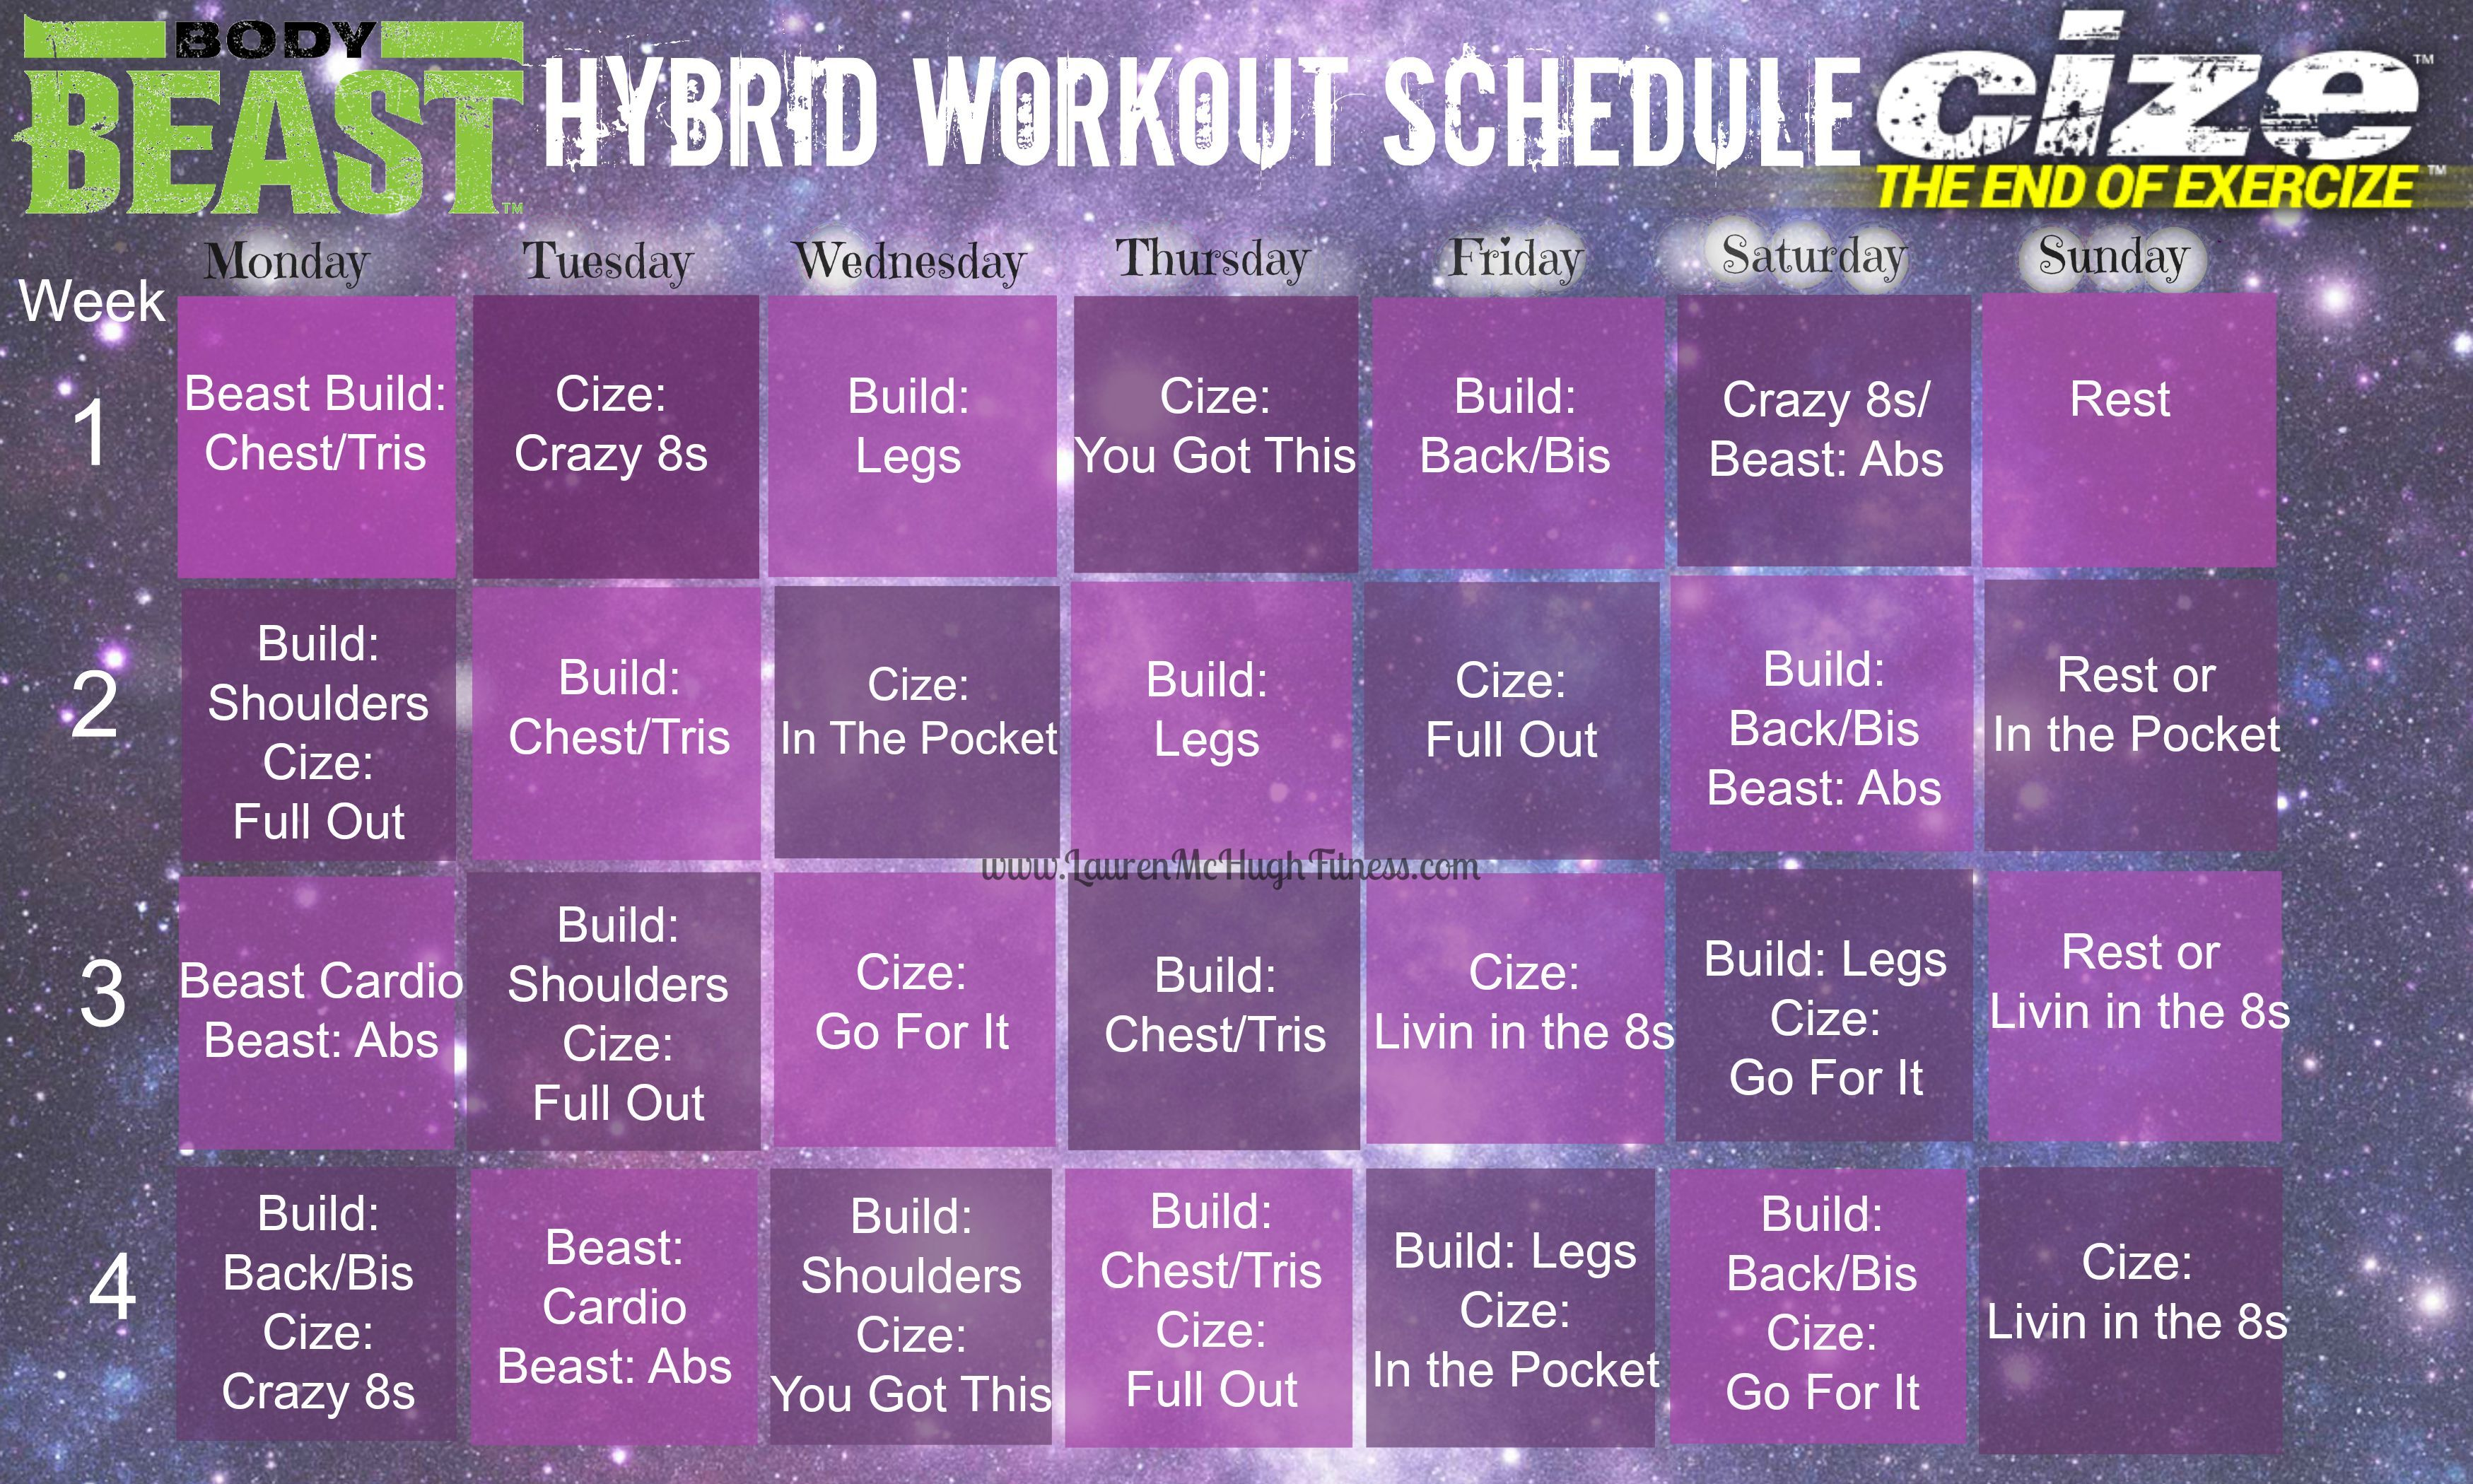 I M So Excited To Announce My New Hybrid Workout Schedule For The Next 60 Days I Ve Been